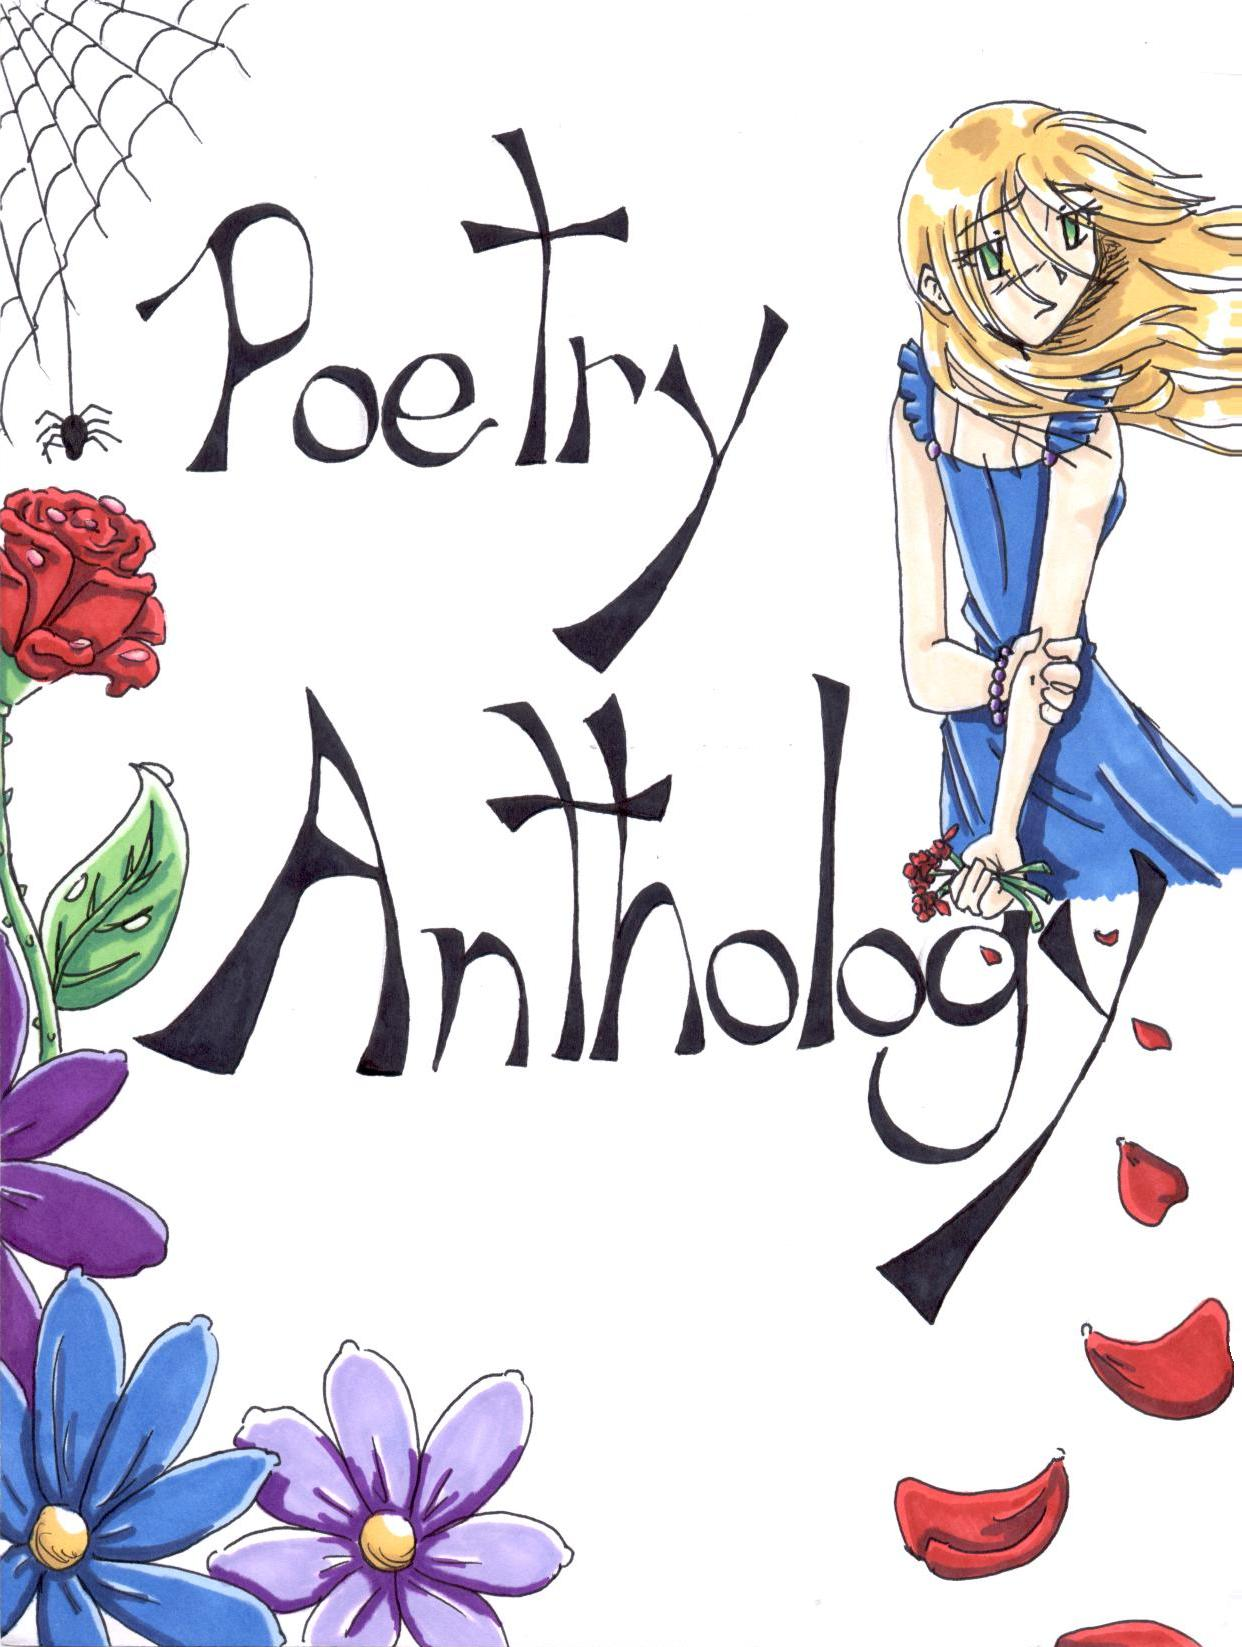 analogy of poetry Looking for examples of metaphors in poetry look no further here we'll describe and analyze some examples sure to assist you with your research and poetry discussion.